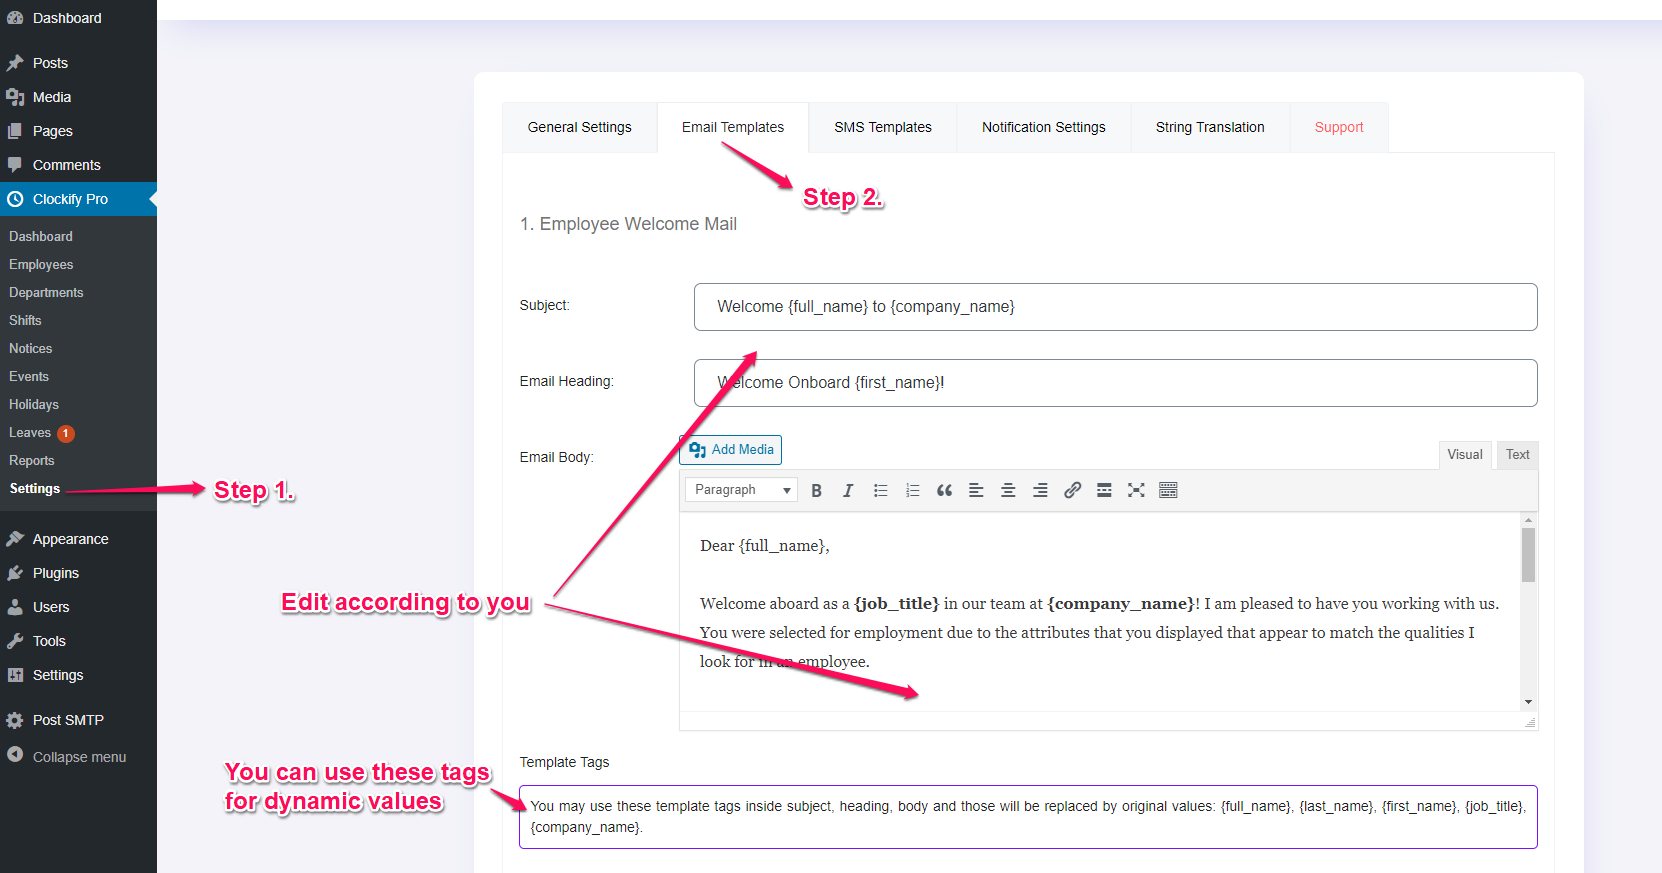 Email templates options